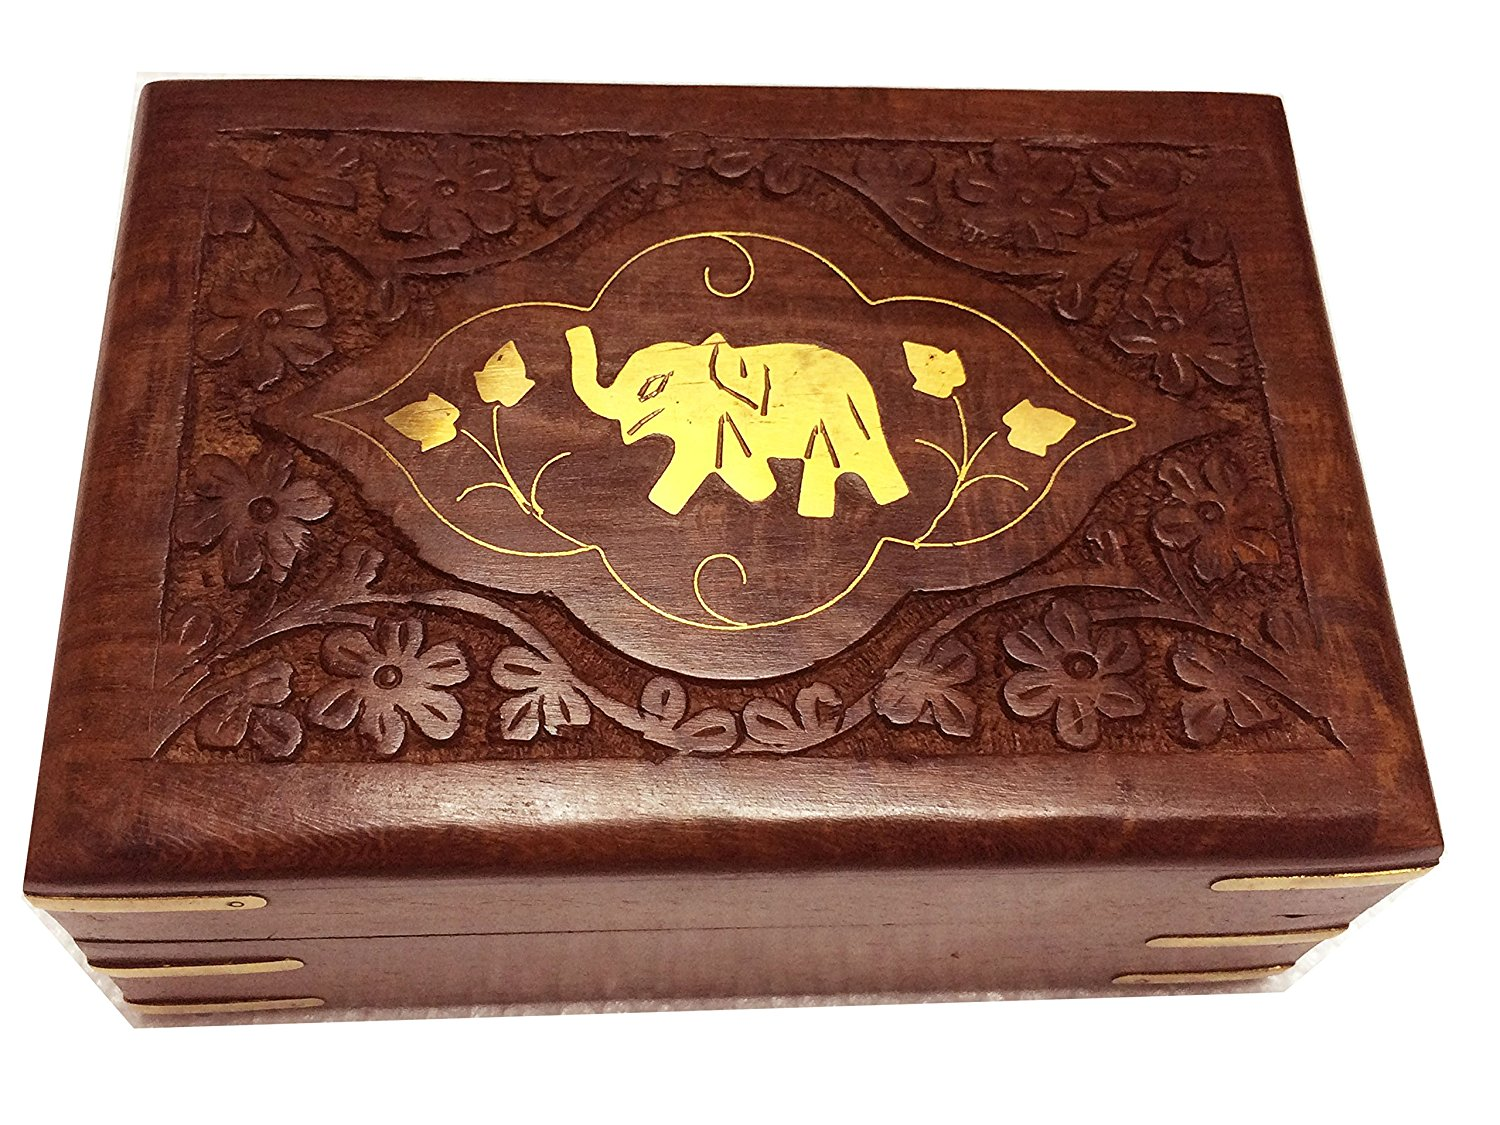 Valentine Day Special Present, Wooden Single Elephant Carving Jewelry Storage Box, Vintage Box, Wooden Keepsake Storage Box, Jewelry Box, Jewelry Trinket Box, Brown Color Size 6X4 inch